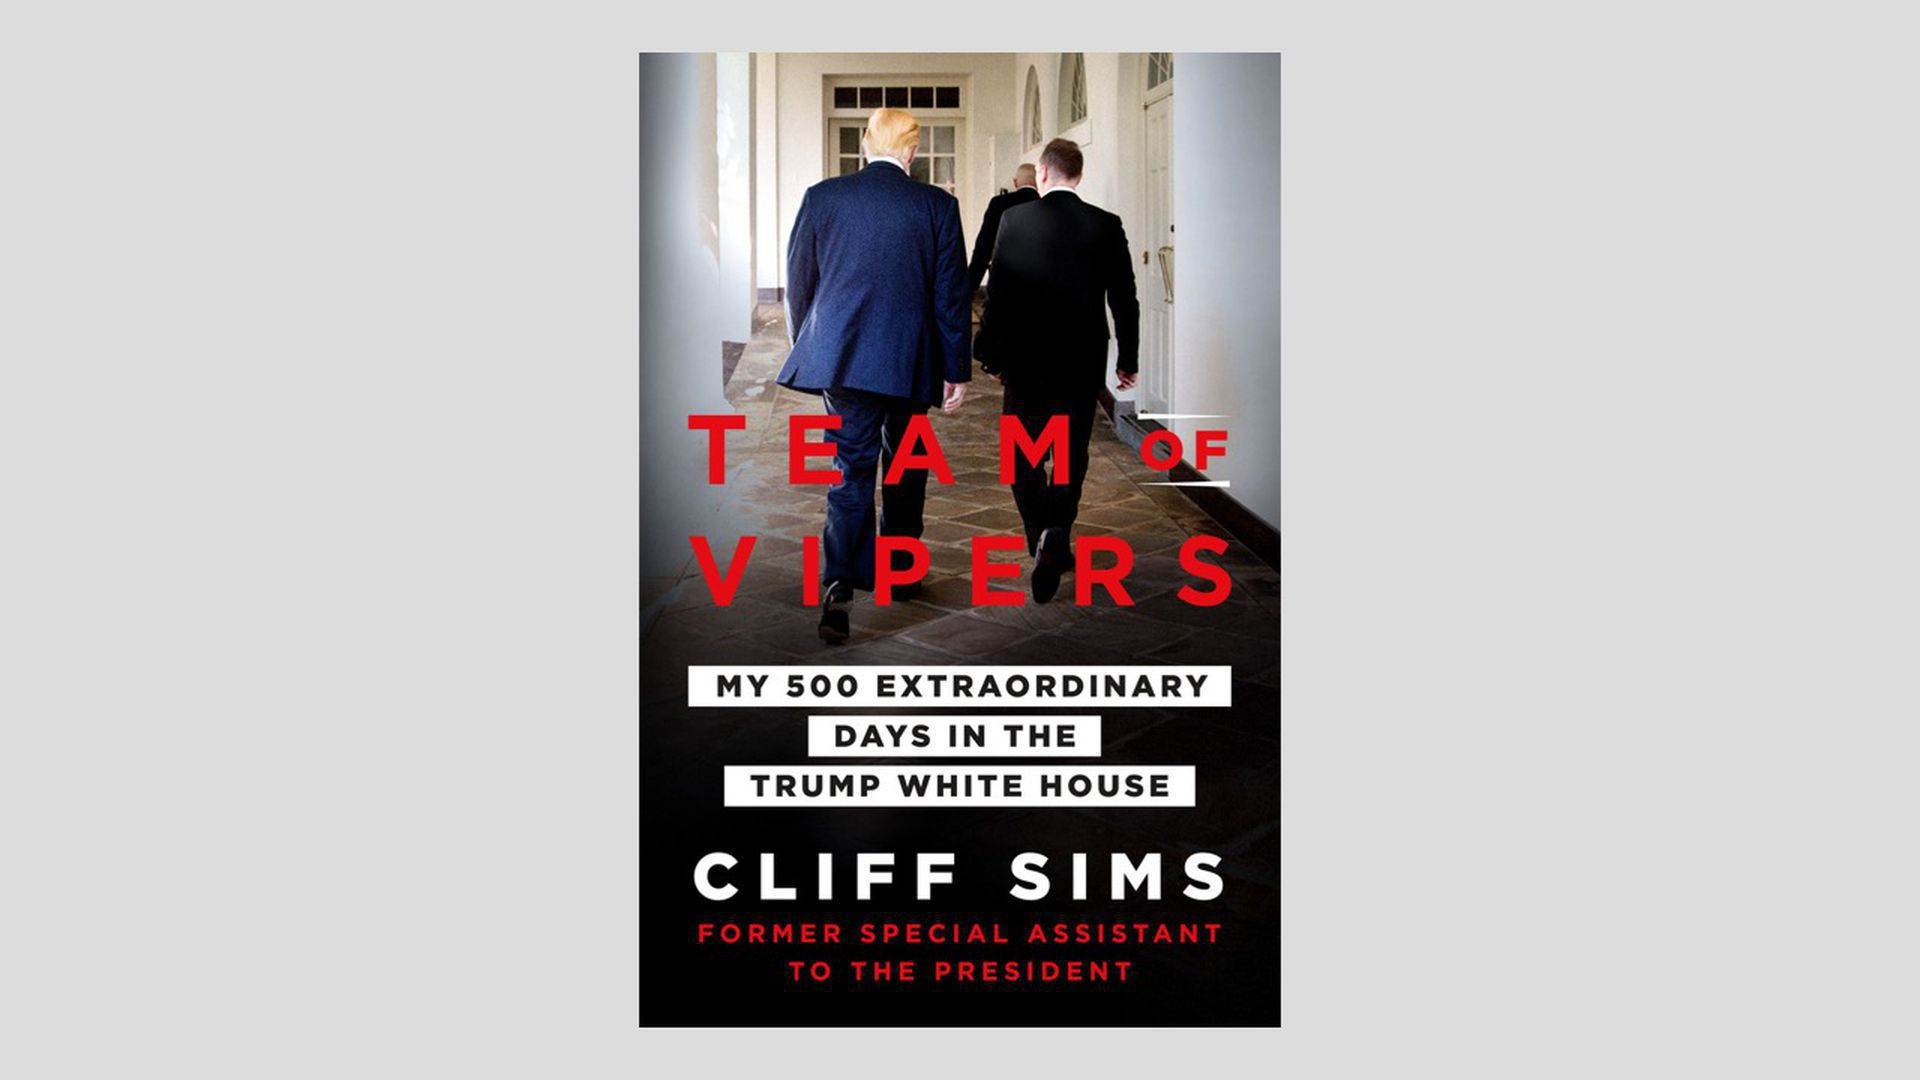 This is a cover of the new Cliff Sims memoir from his time in the Trump White House